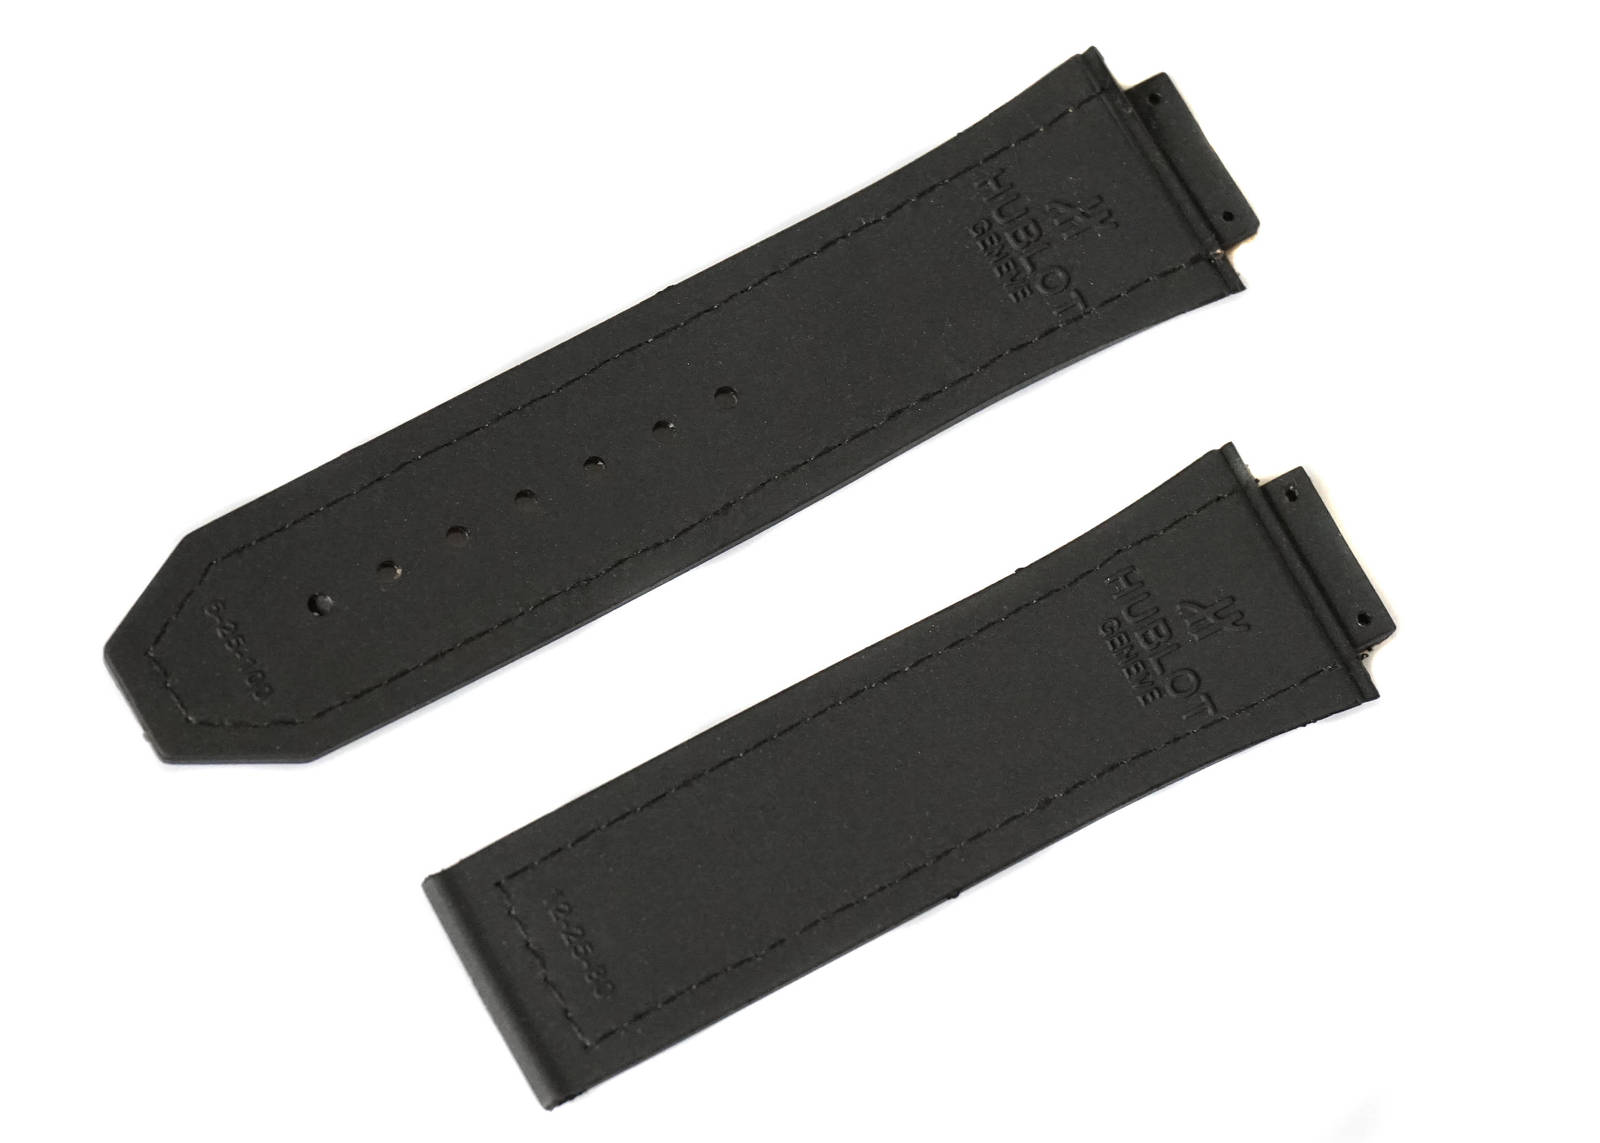 New Hublot Matte Calf Leather Replacement Watch Band Strap For Hublot Big Bang